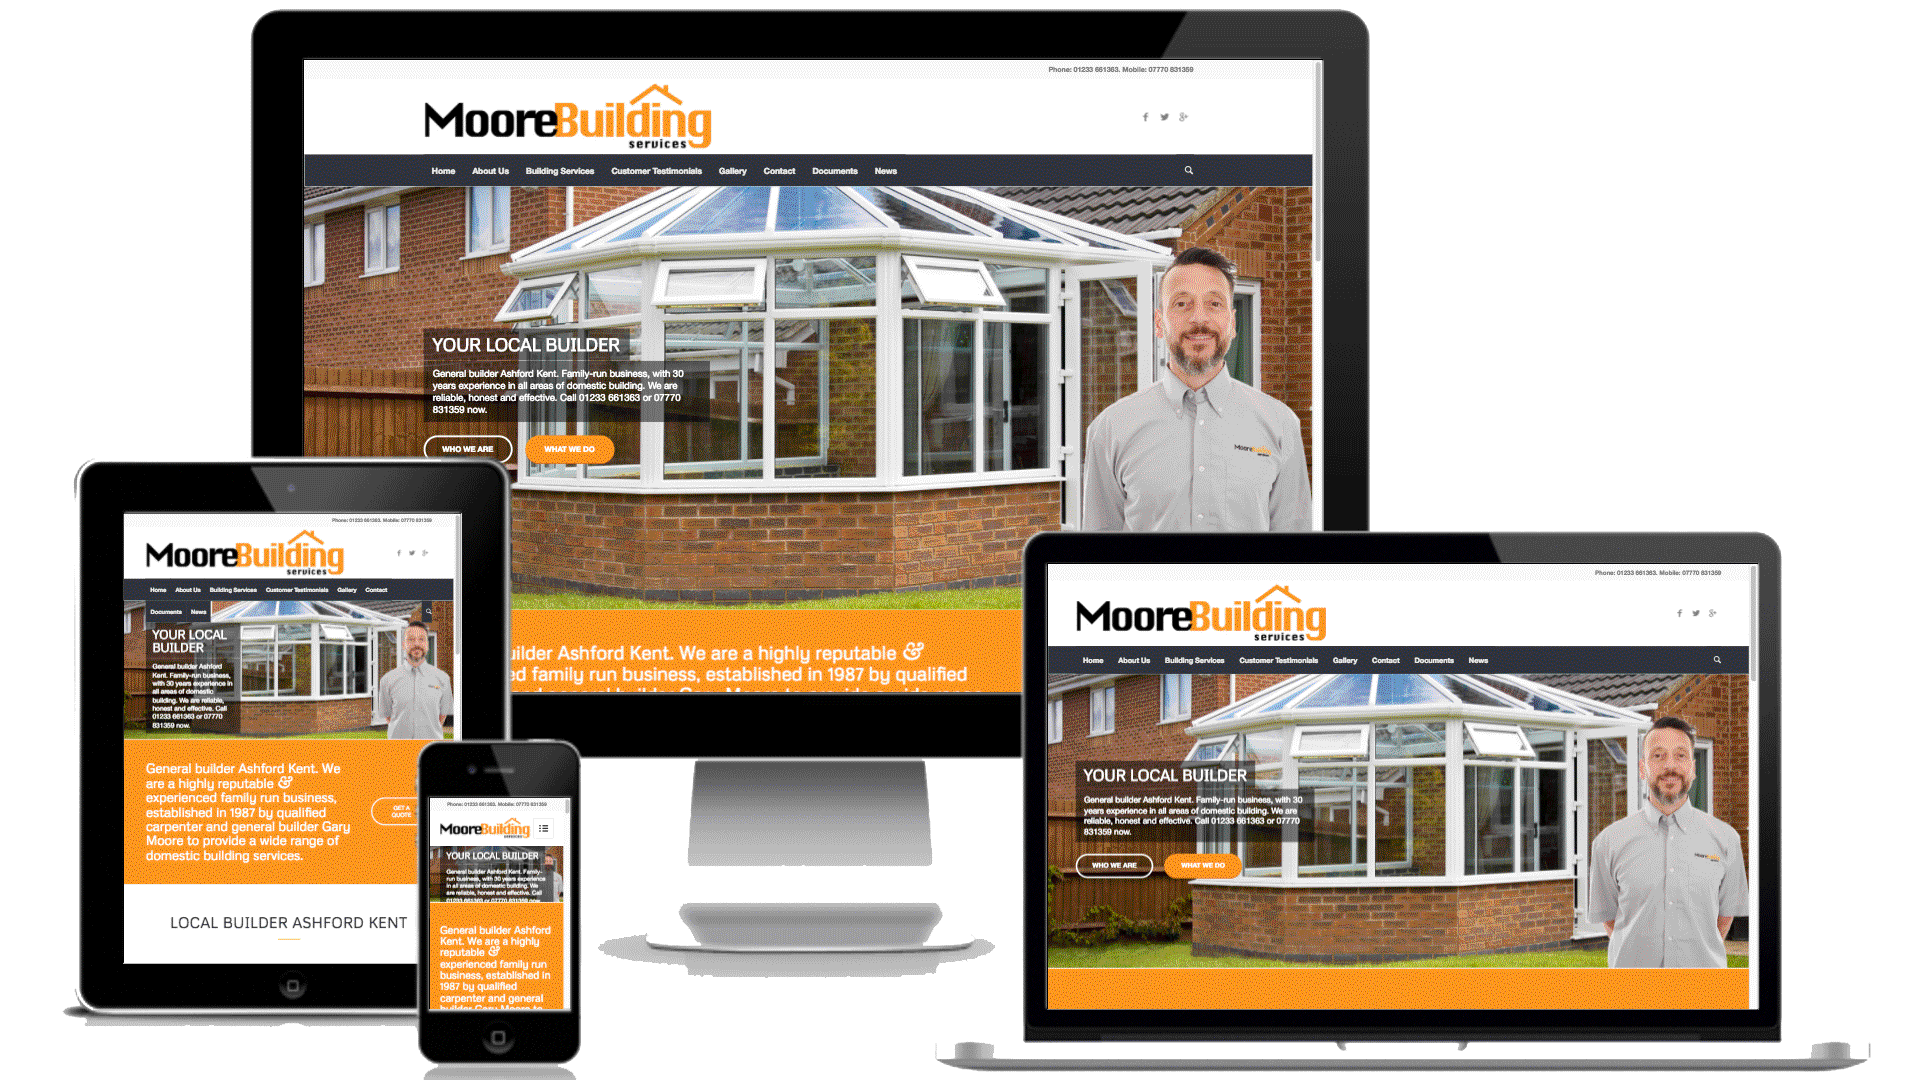 web-design-ashford-1920x1080-moore-building-services